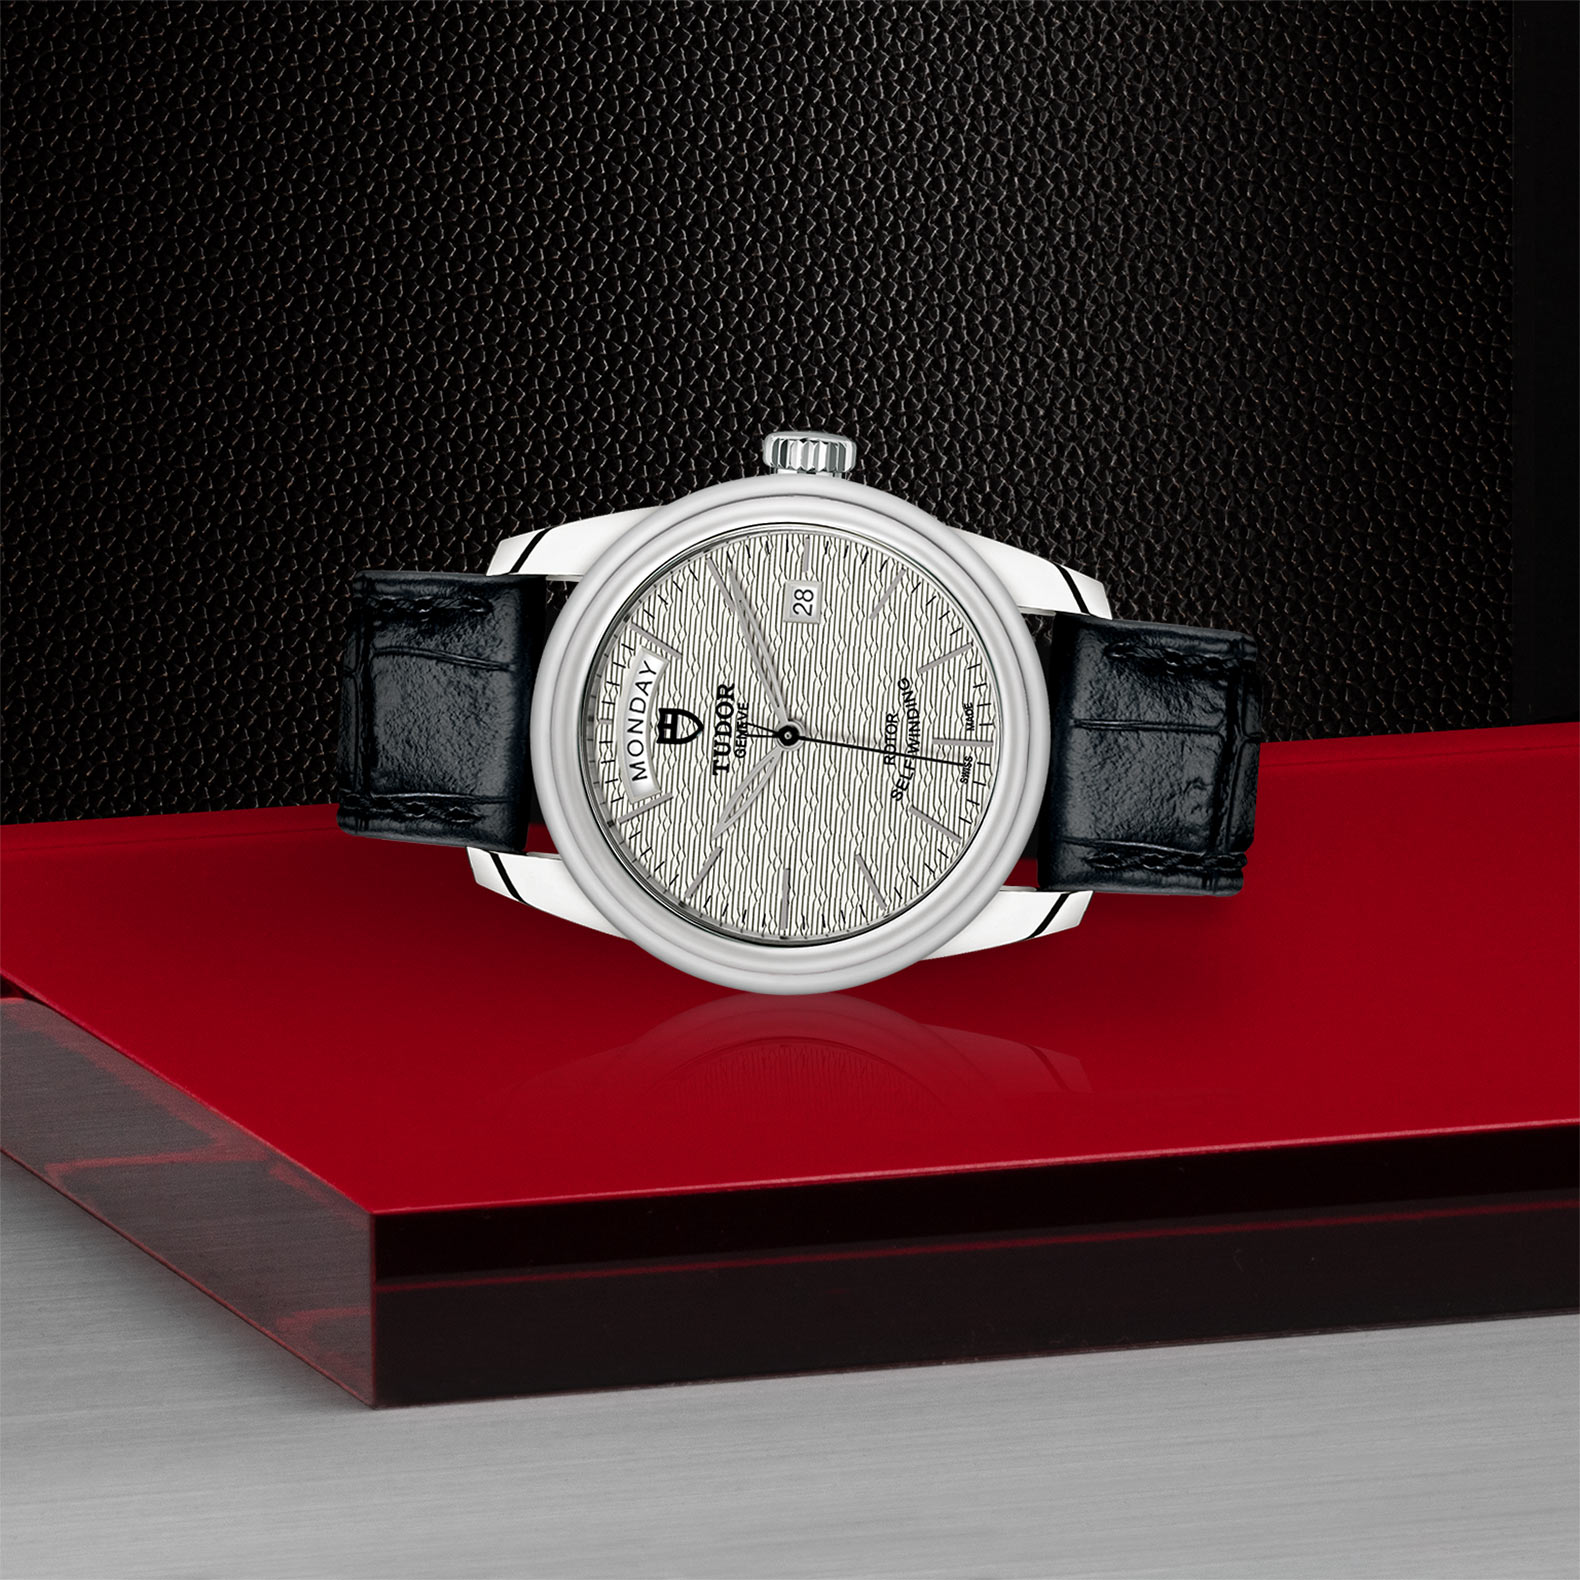 TUDOR Glamour Date+Day - M56000-0043